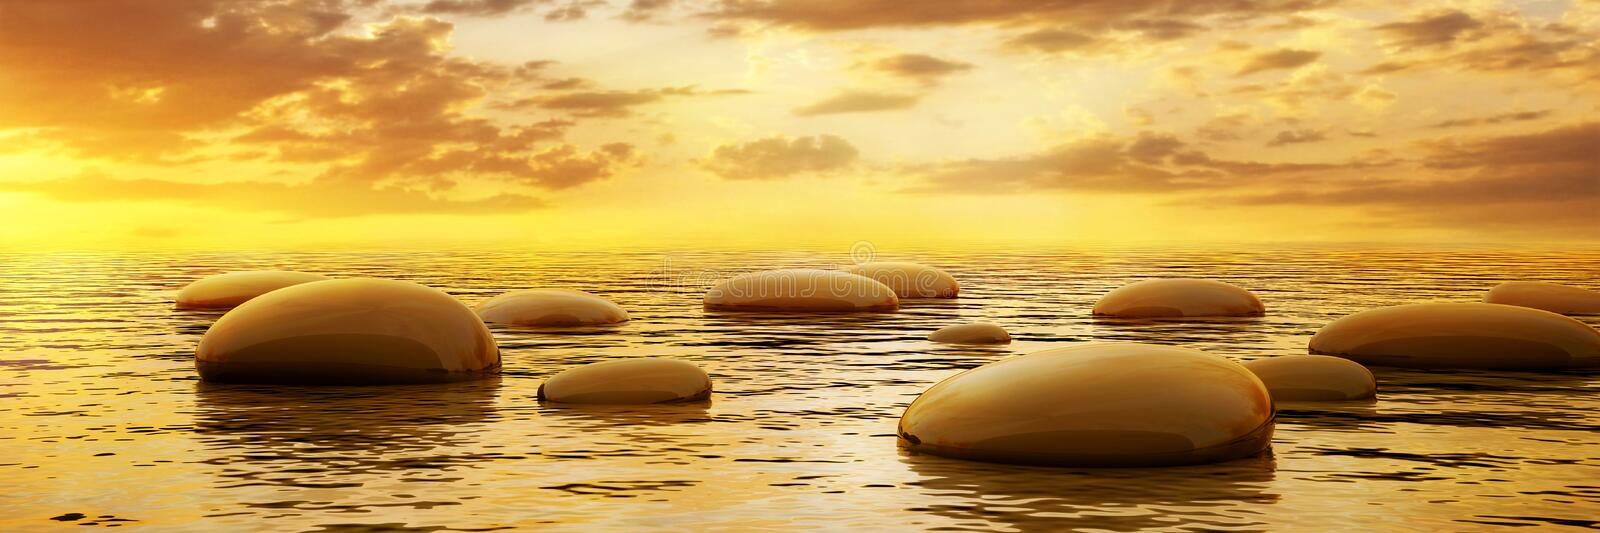 Smooth stones reflecting in water at sunset royalty free stock photos